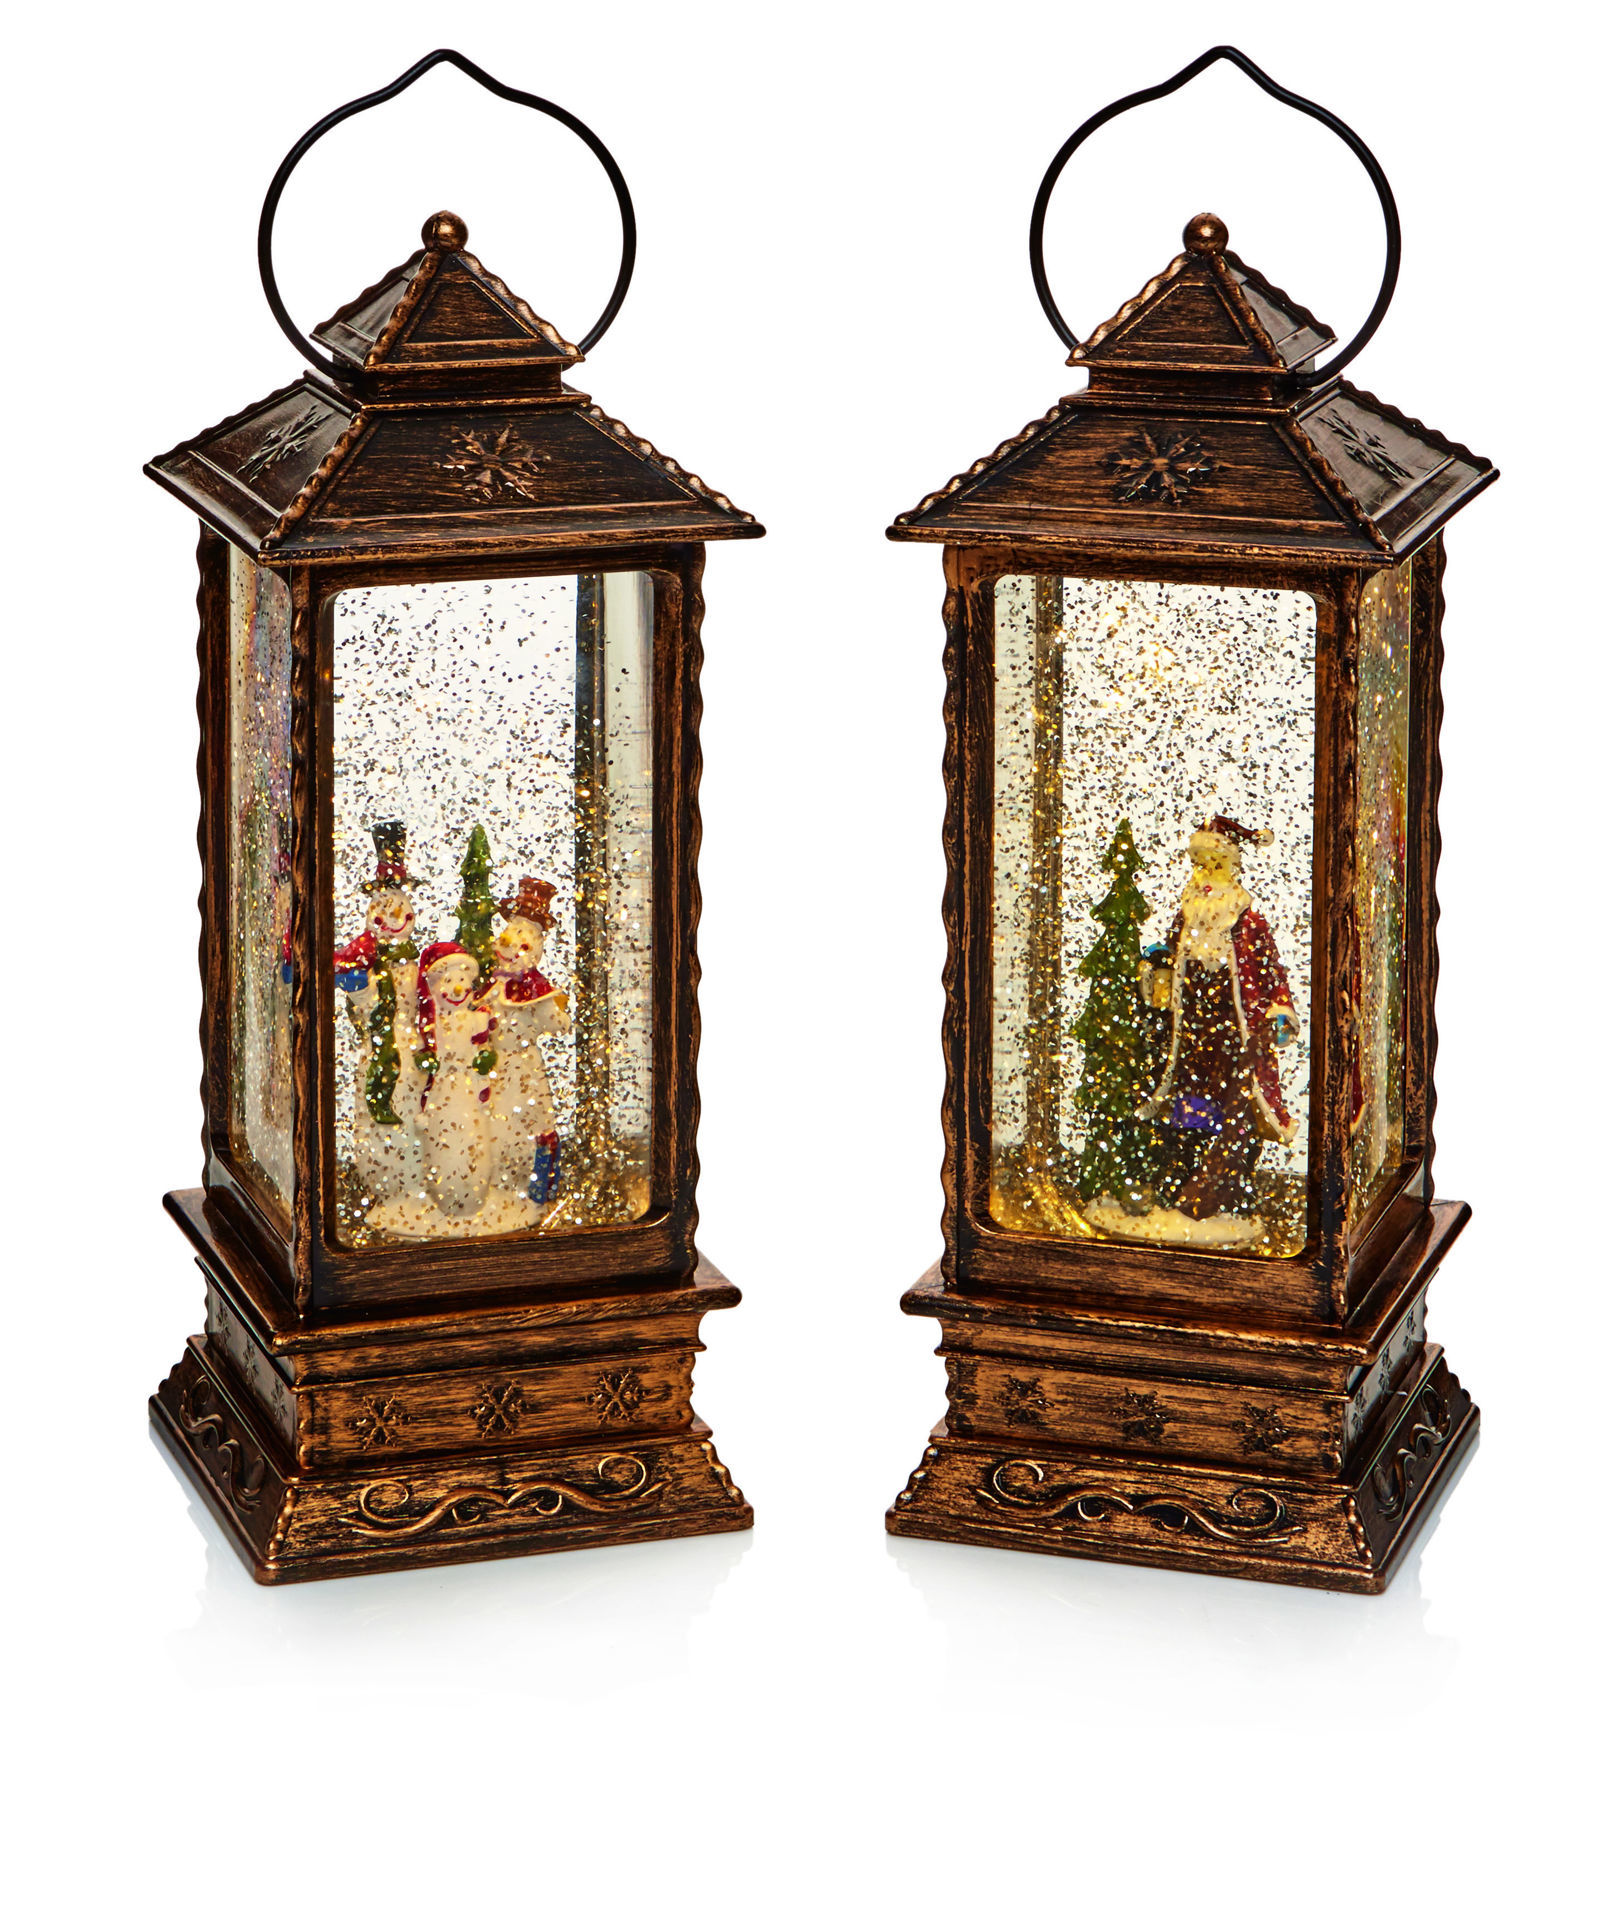 Picture of Premier Decorations N/A LED Water Spinner Lanterns - 27cm